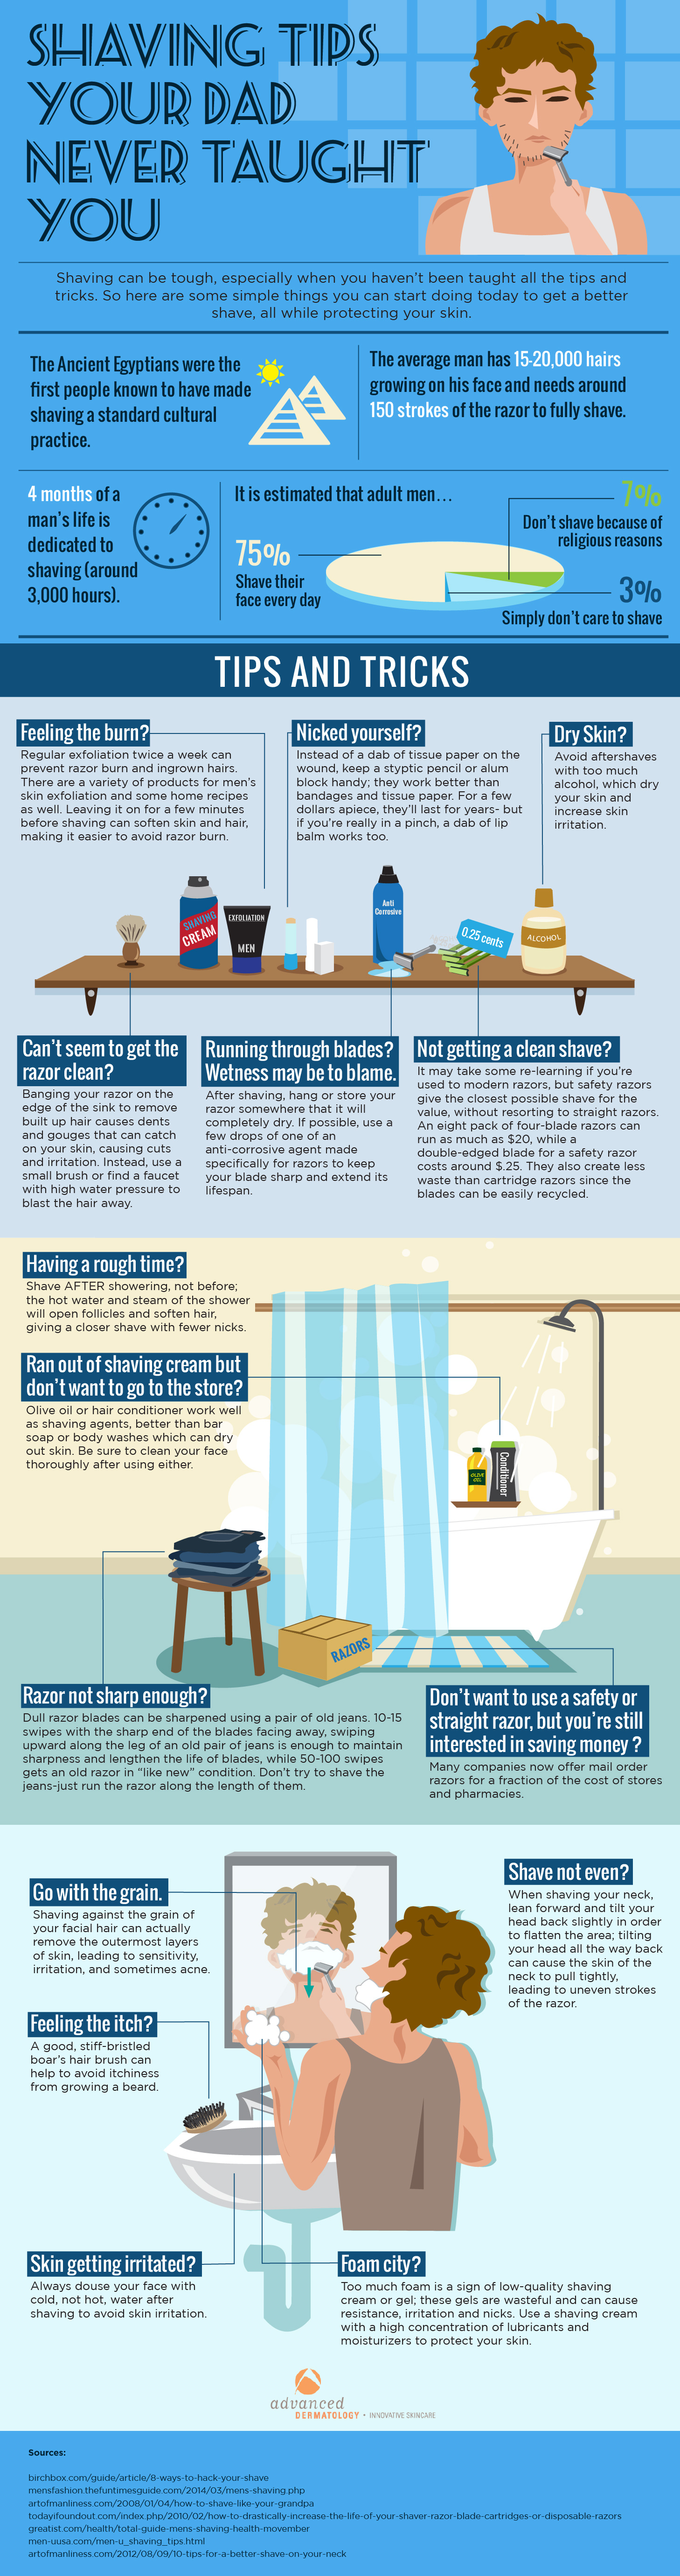 Shaving Tips Infographic